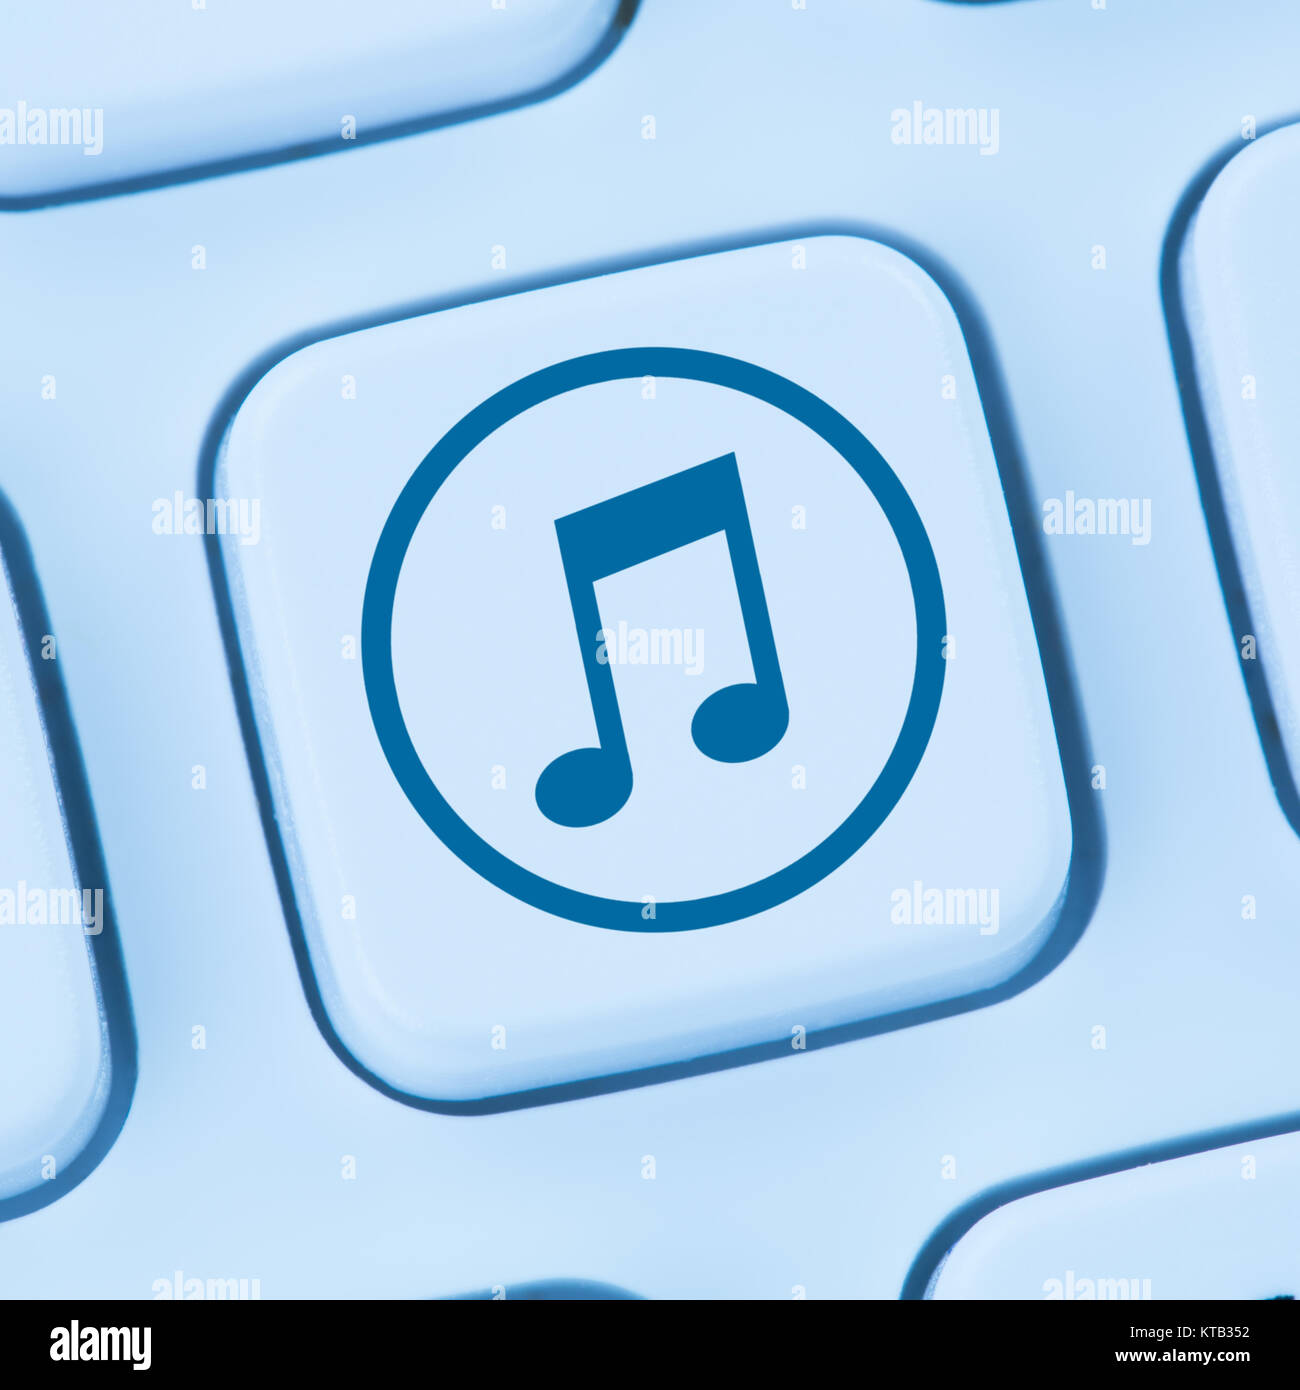 Song Download Stock Photos & Song Download Stock Images - Alamy